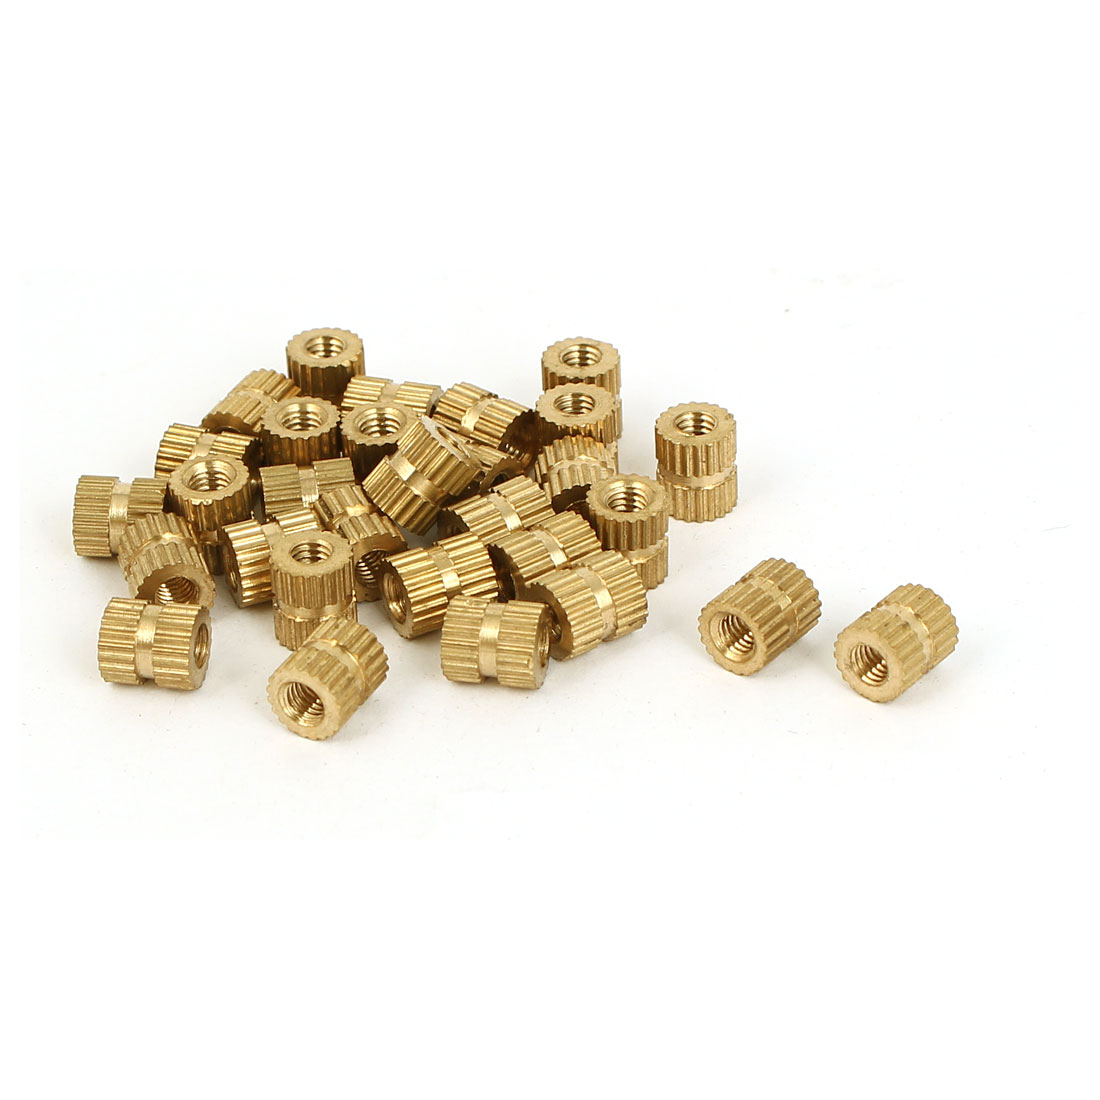 M3 x 5mm x 6mm 0.5mm Pitch Embedded Brass Knurled Thumb Nuts Gold Tone 30 Pcs